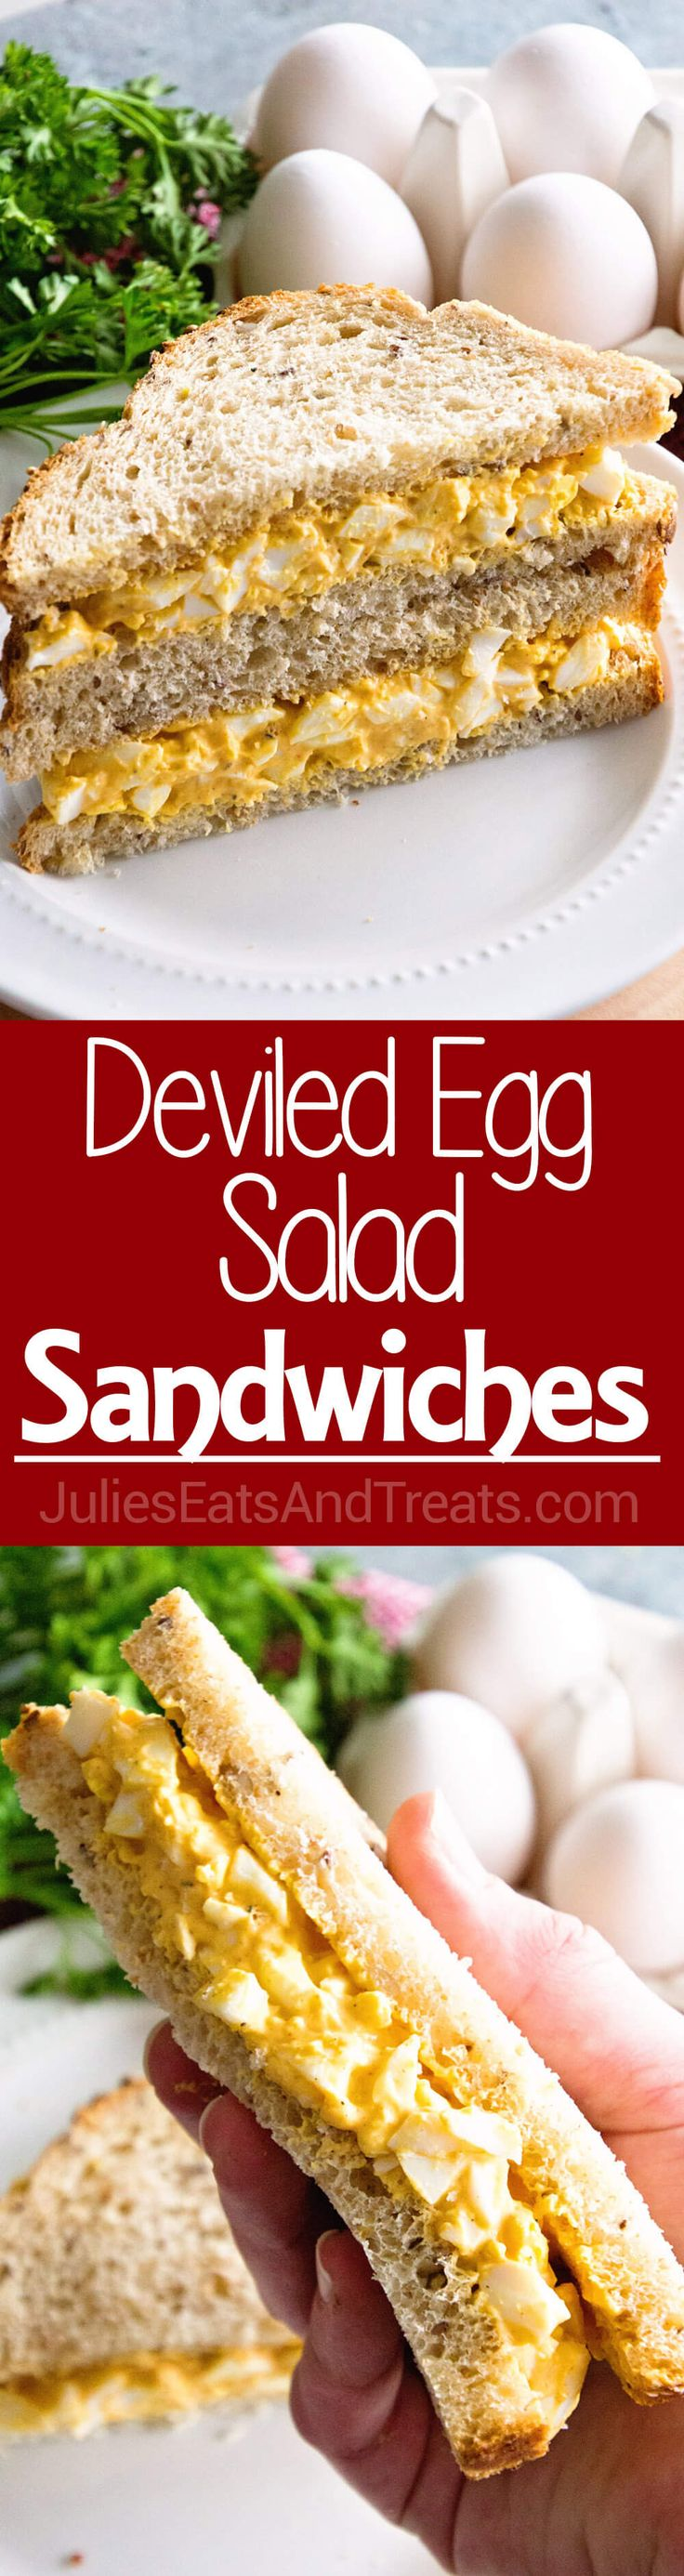 Deviled Egg Salad Sandwiches ~ Your Favorite Deviled Eggs Piled onto a Sandwich! Perfect Recipe for a Quick and Easy Lunch! via @julieseats